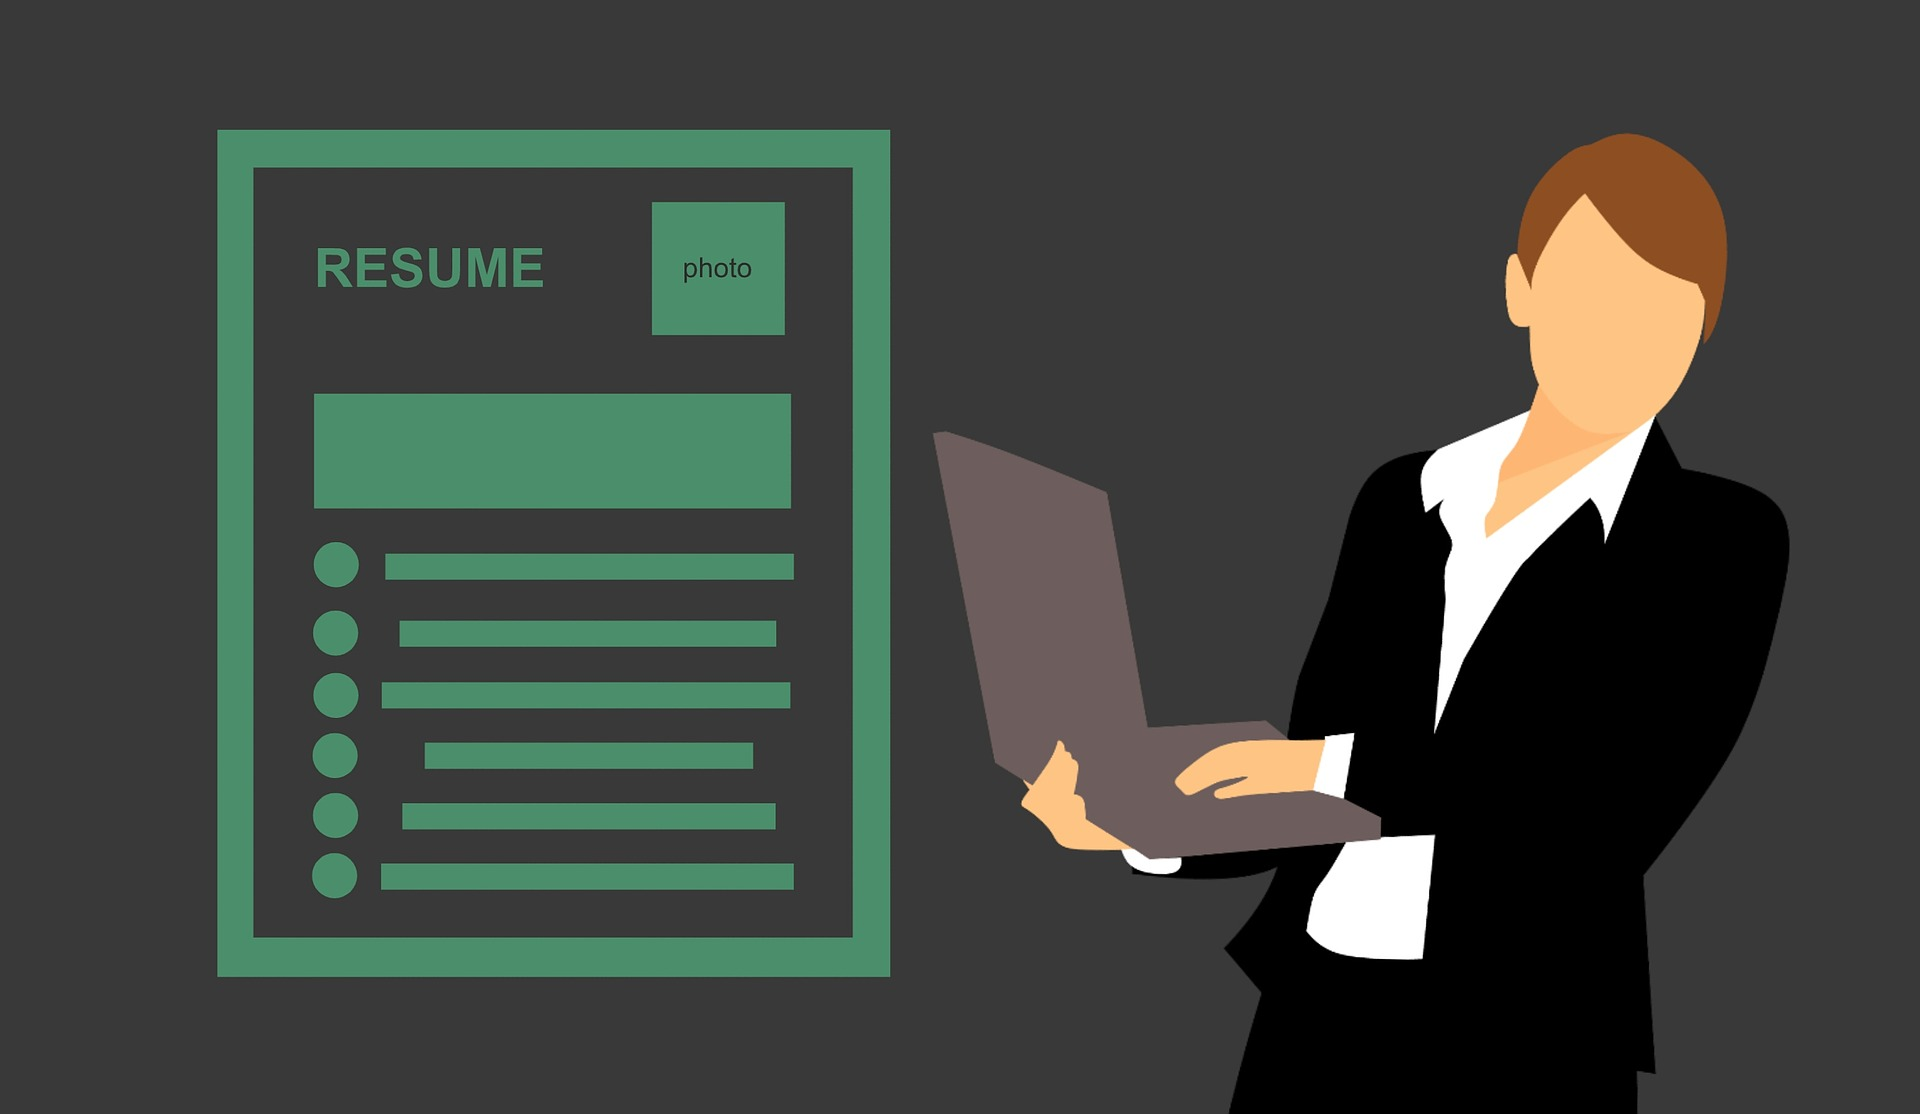 I will provide professional resume writing services for you